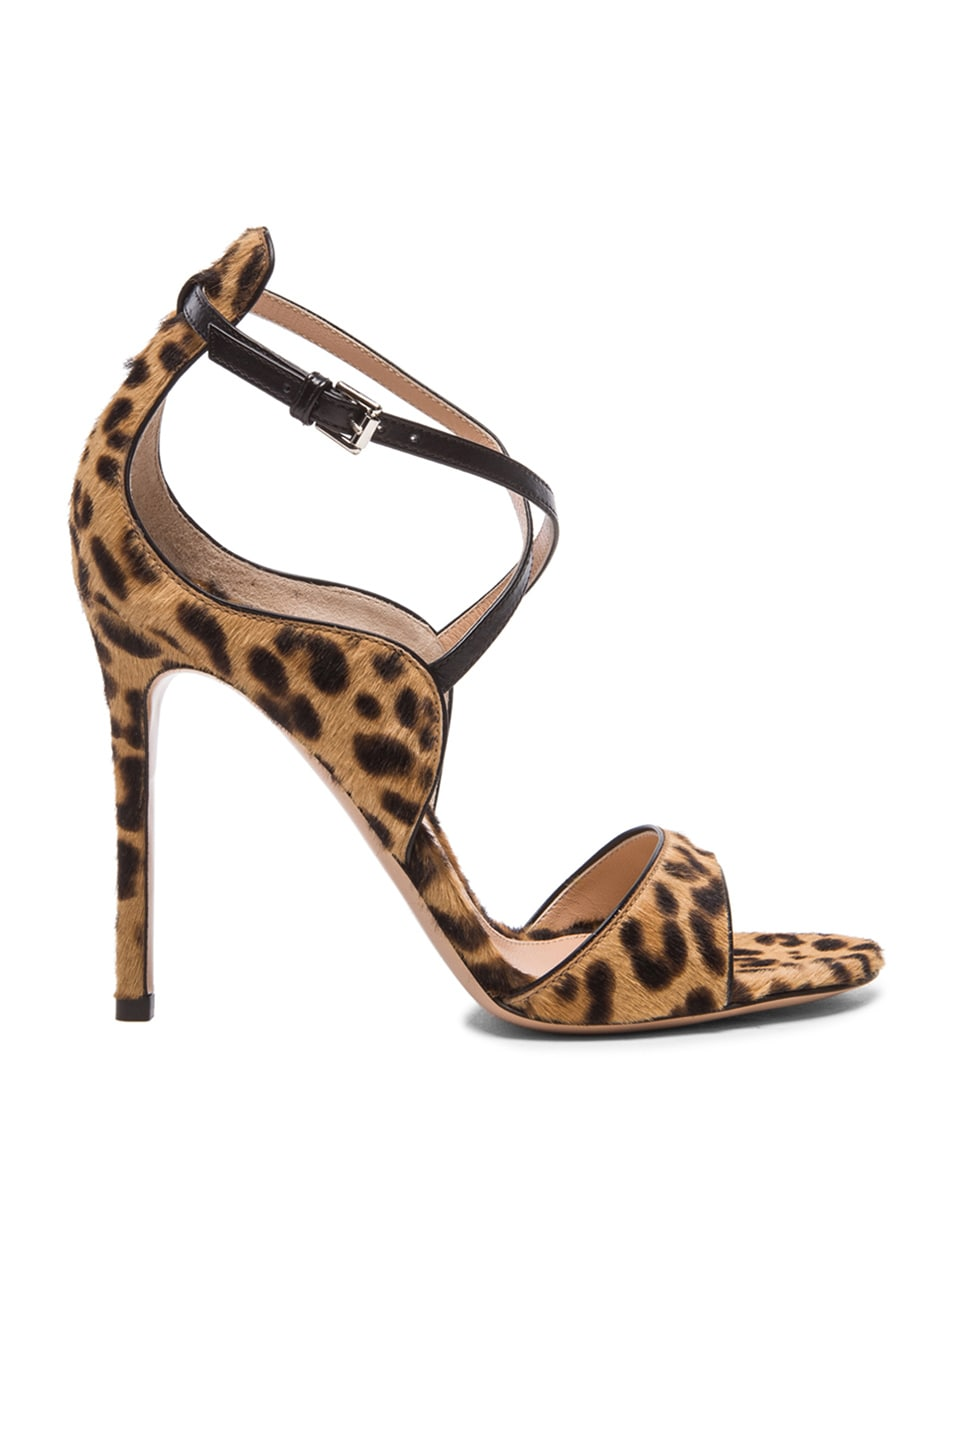 Image 1 of Gianvito Rossi Strappy Calf Hair Heels in Black Leopard Print